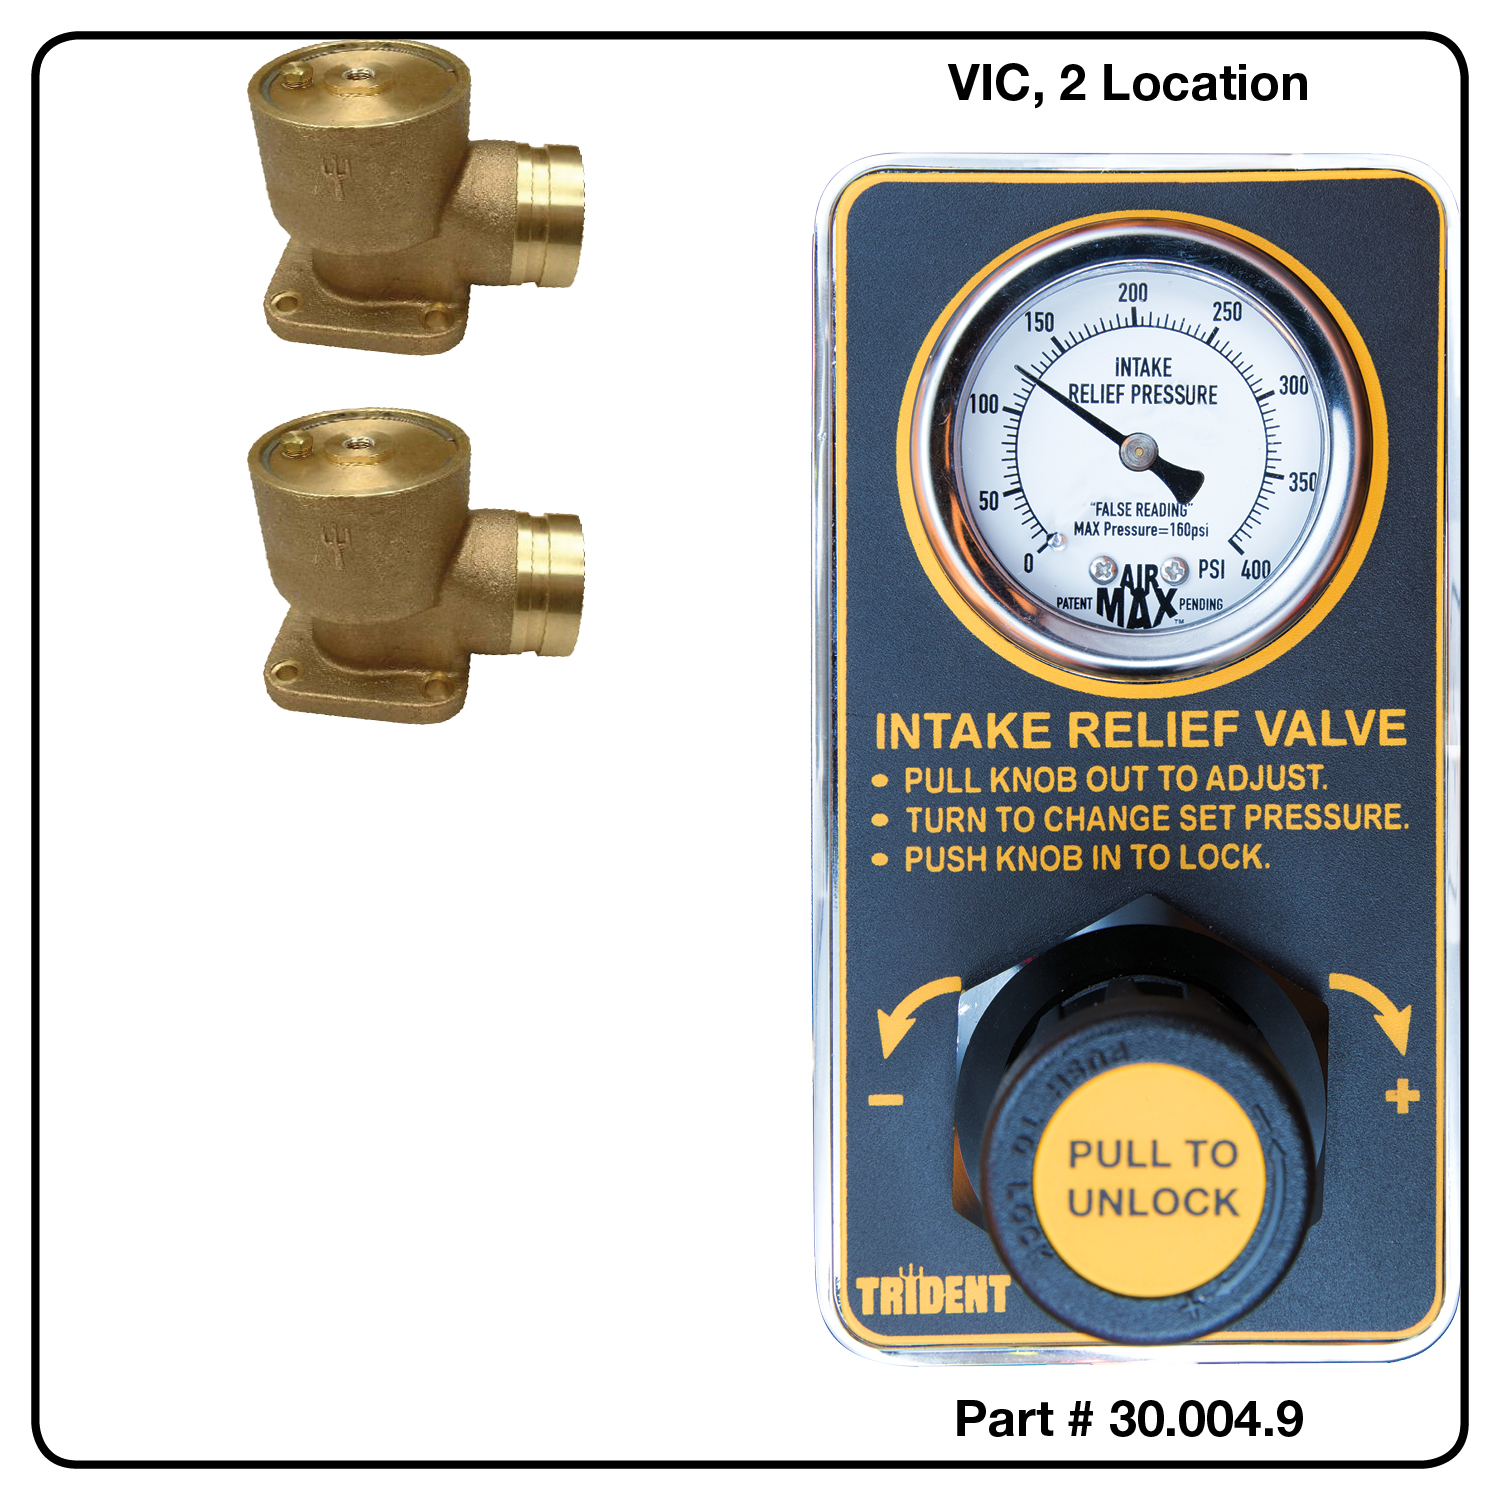 AirMax Relief Valve, VIC, Two Location